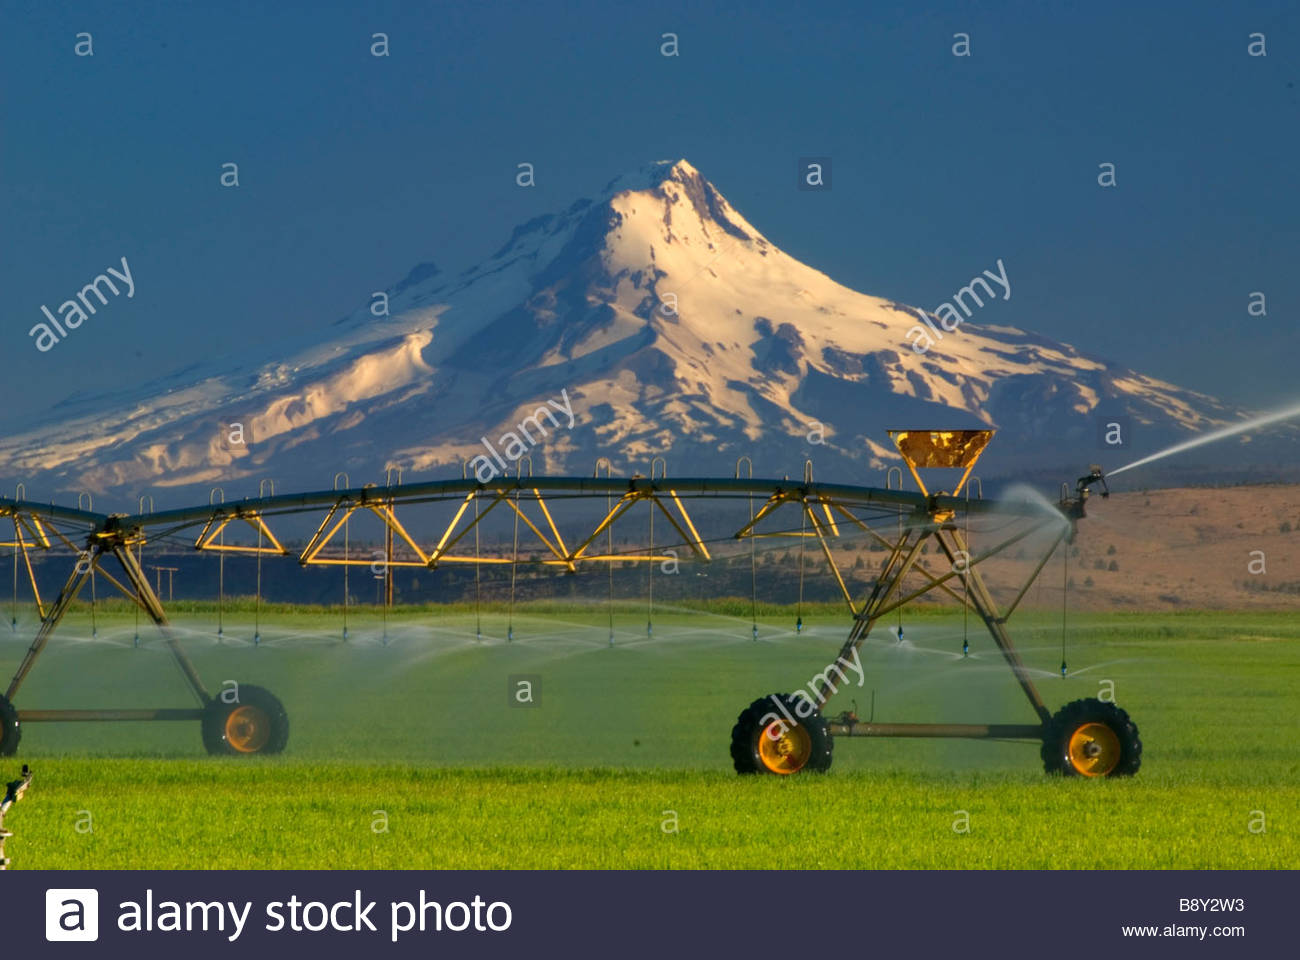 Agricultural sprinkler in a field with a mountain in the background, Mt Hood, Jefferson County, Oregon, USA - Stock Image